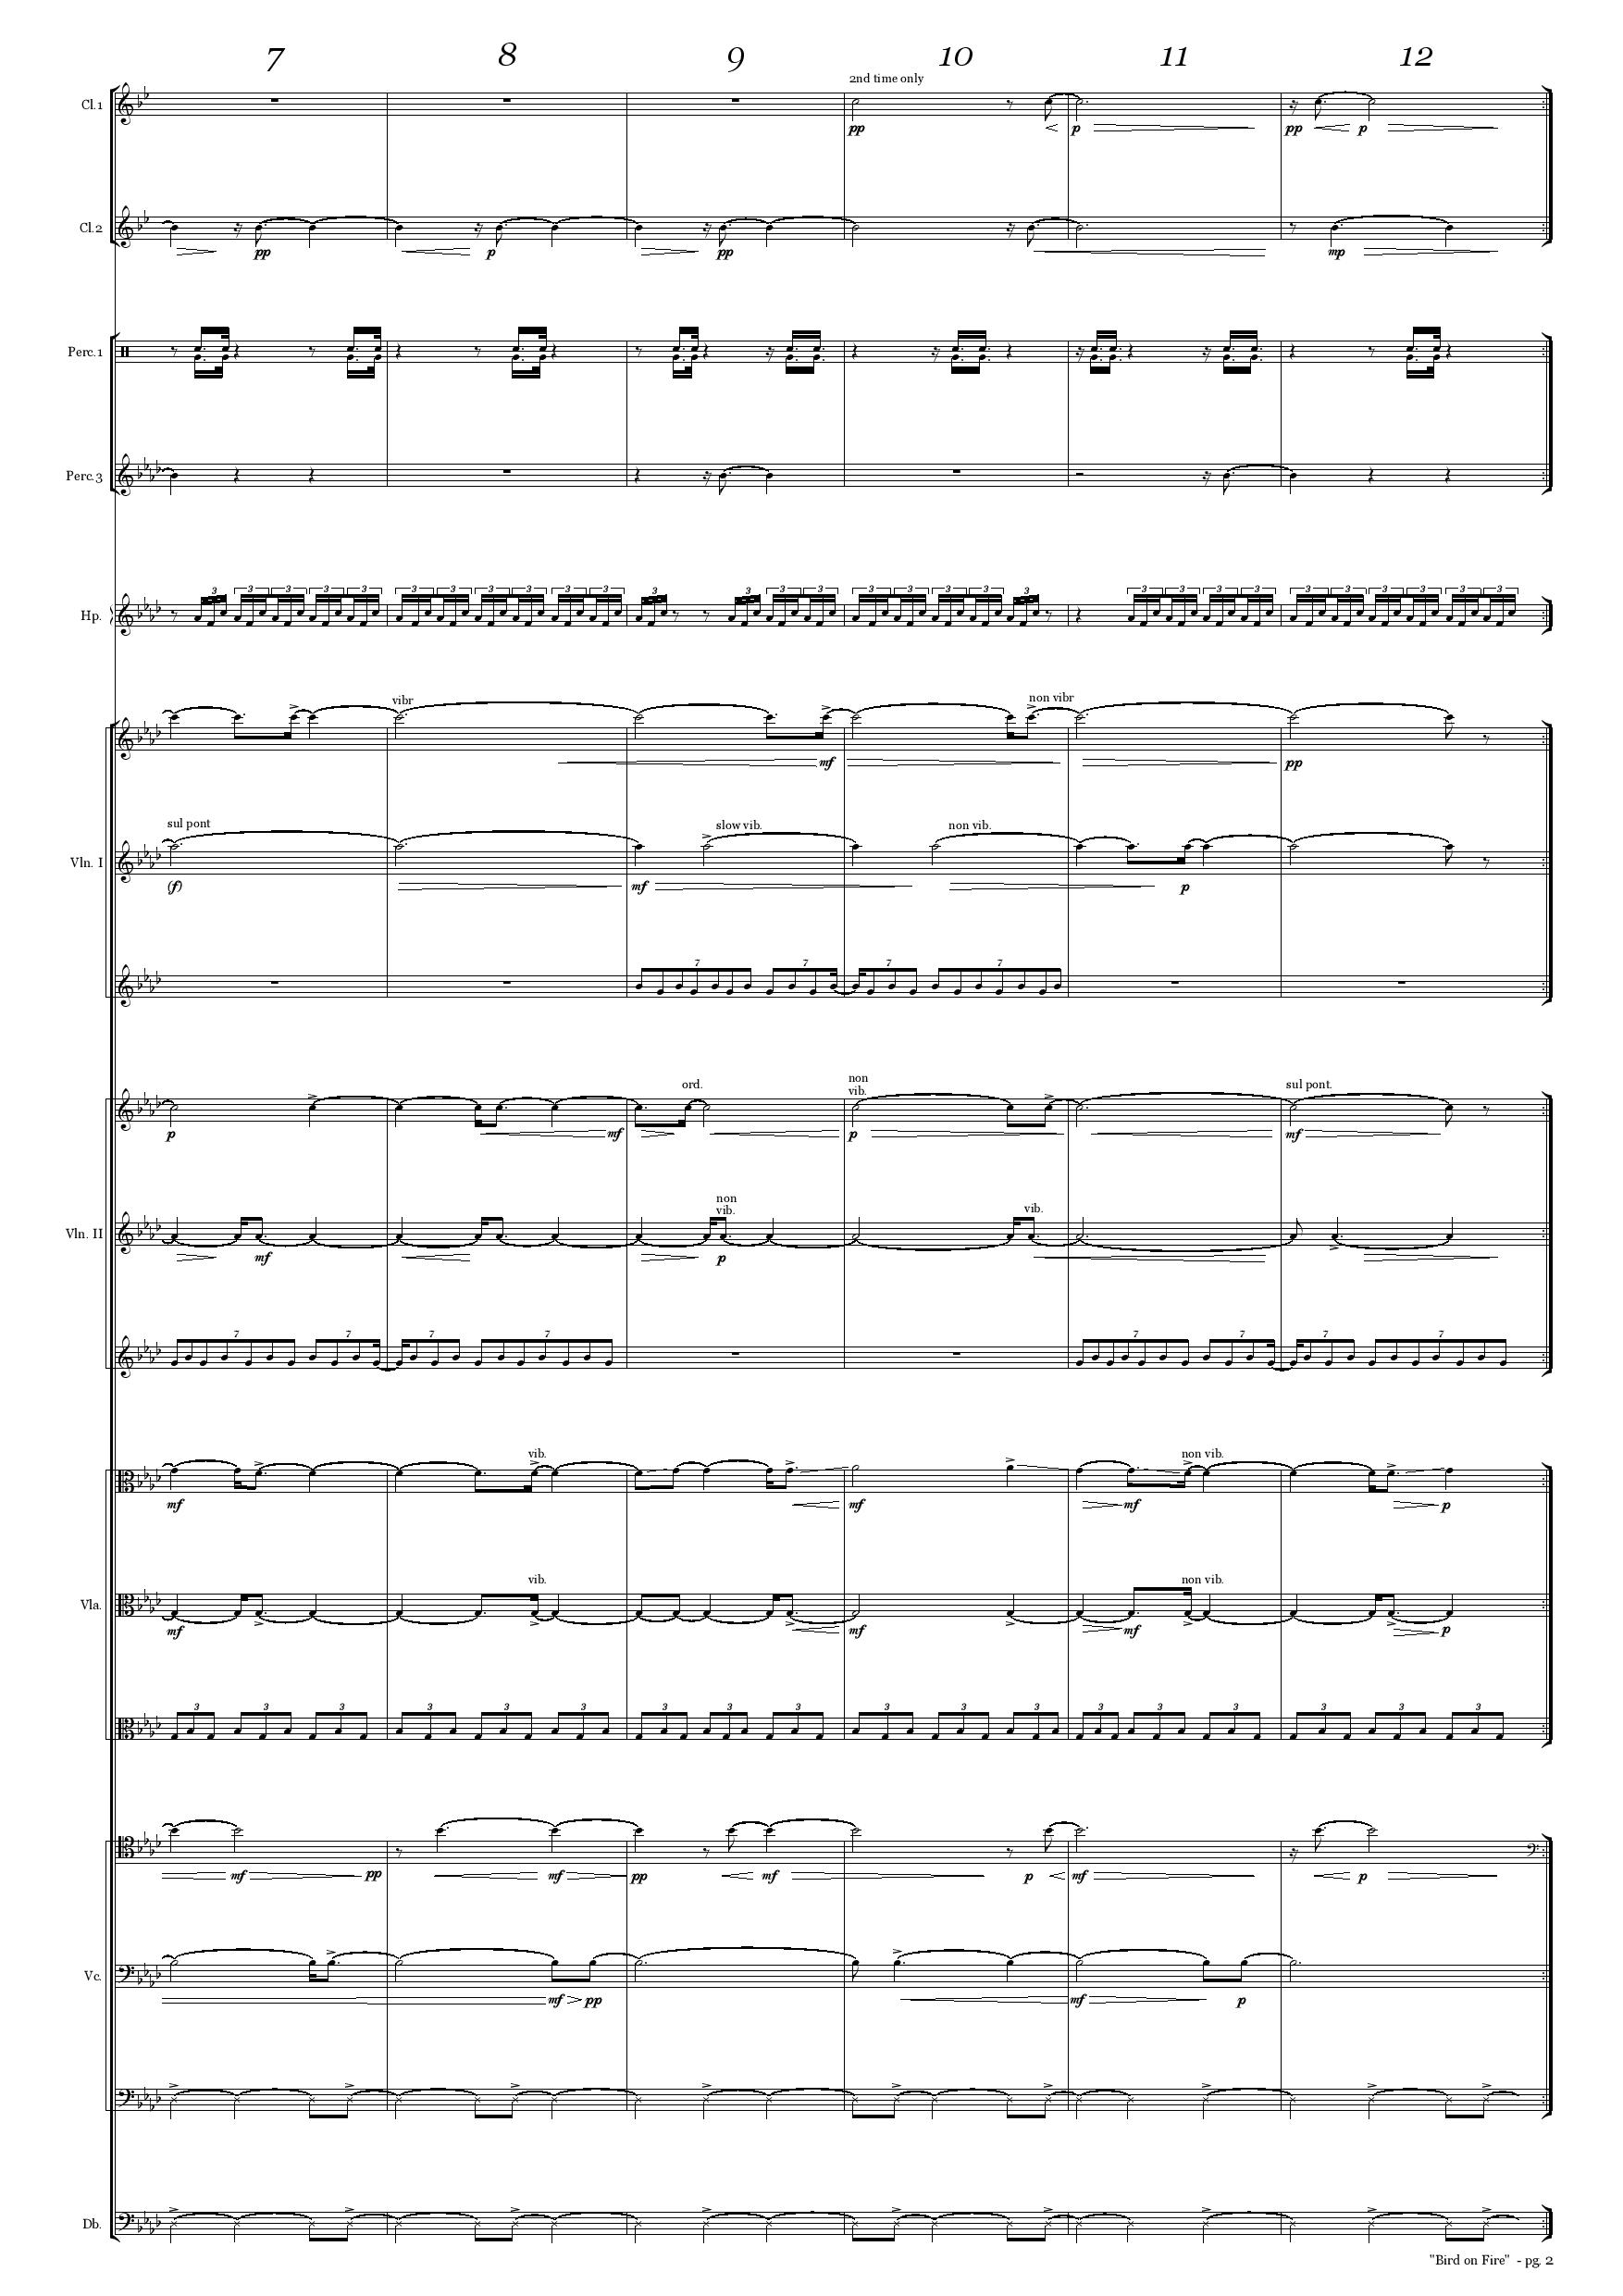 Bird on Fire - score-page-005.jpg